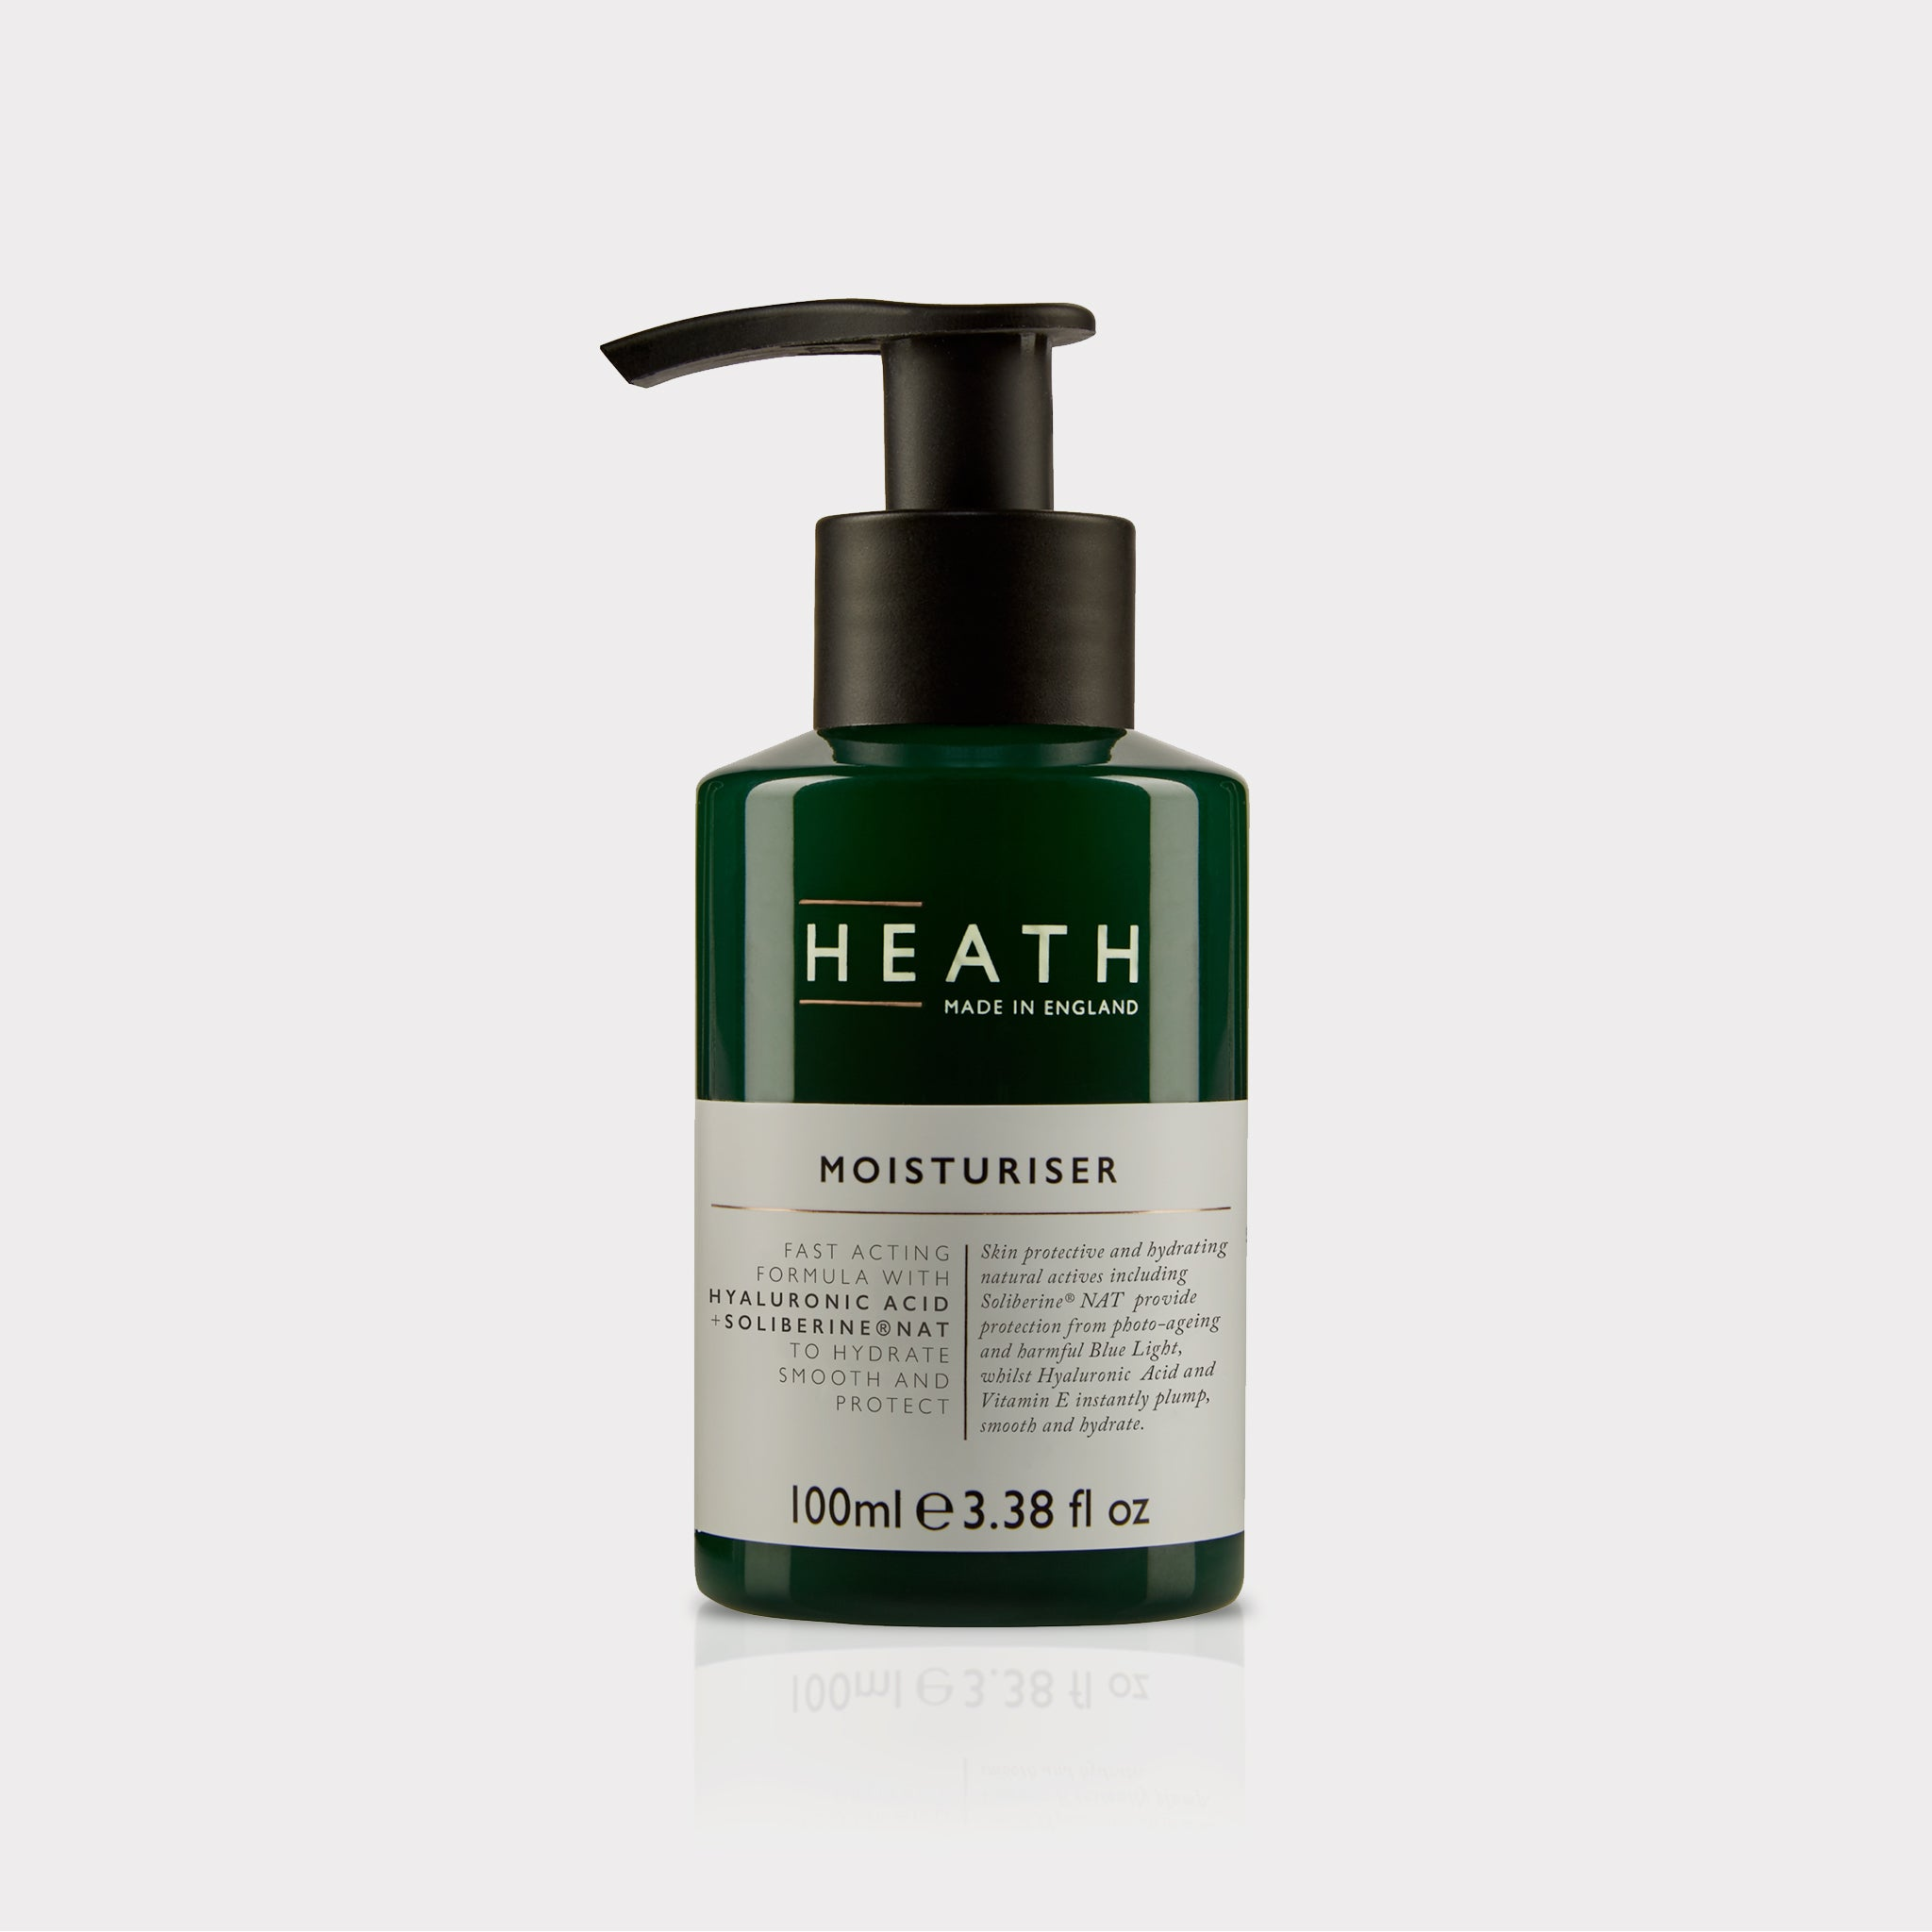 Heath Moisturiser 100ml